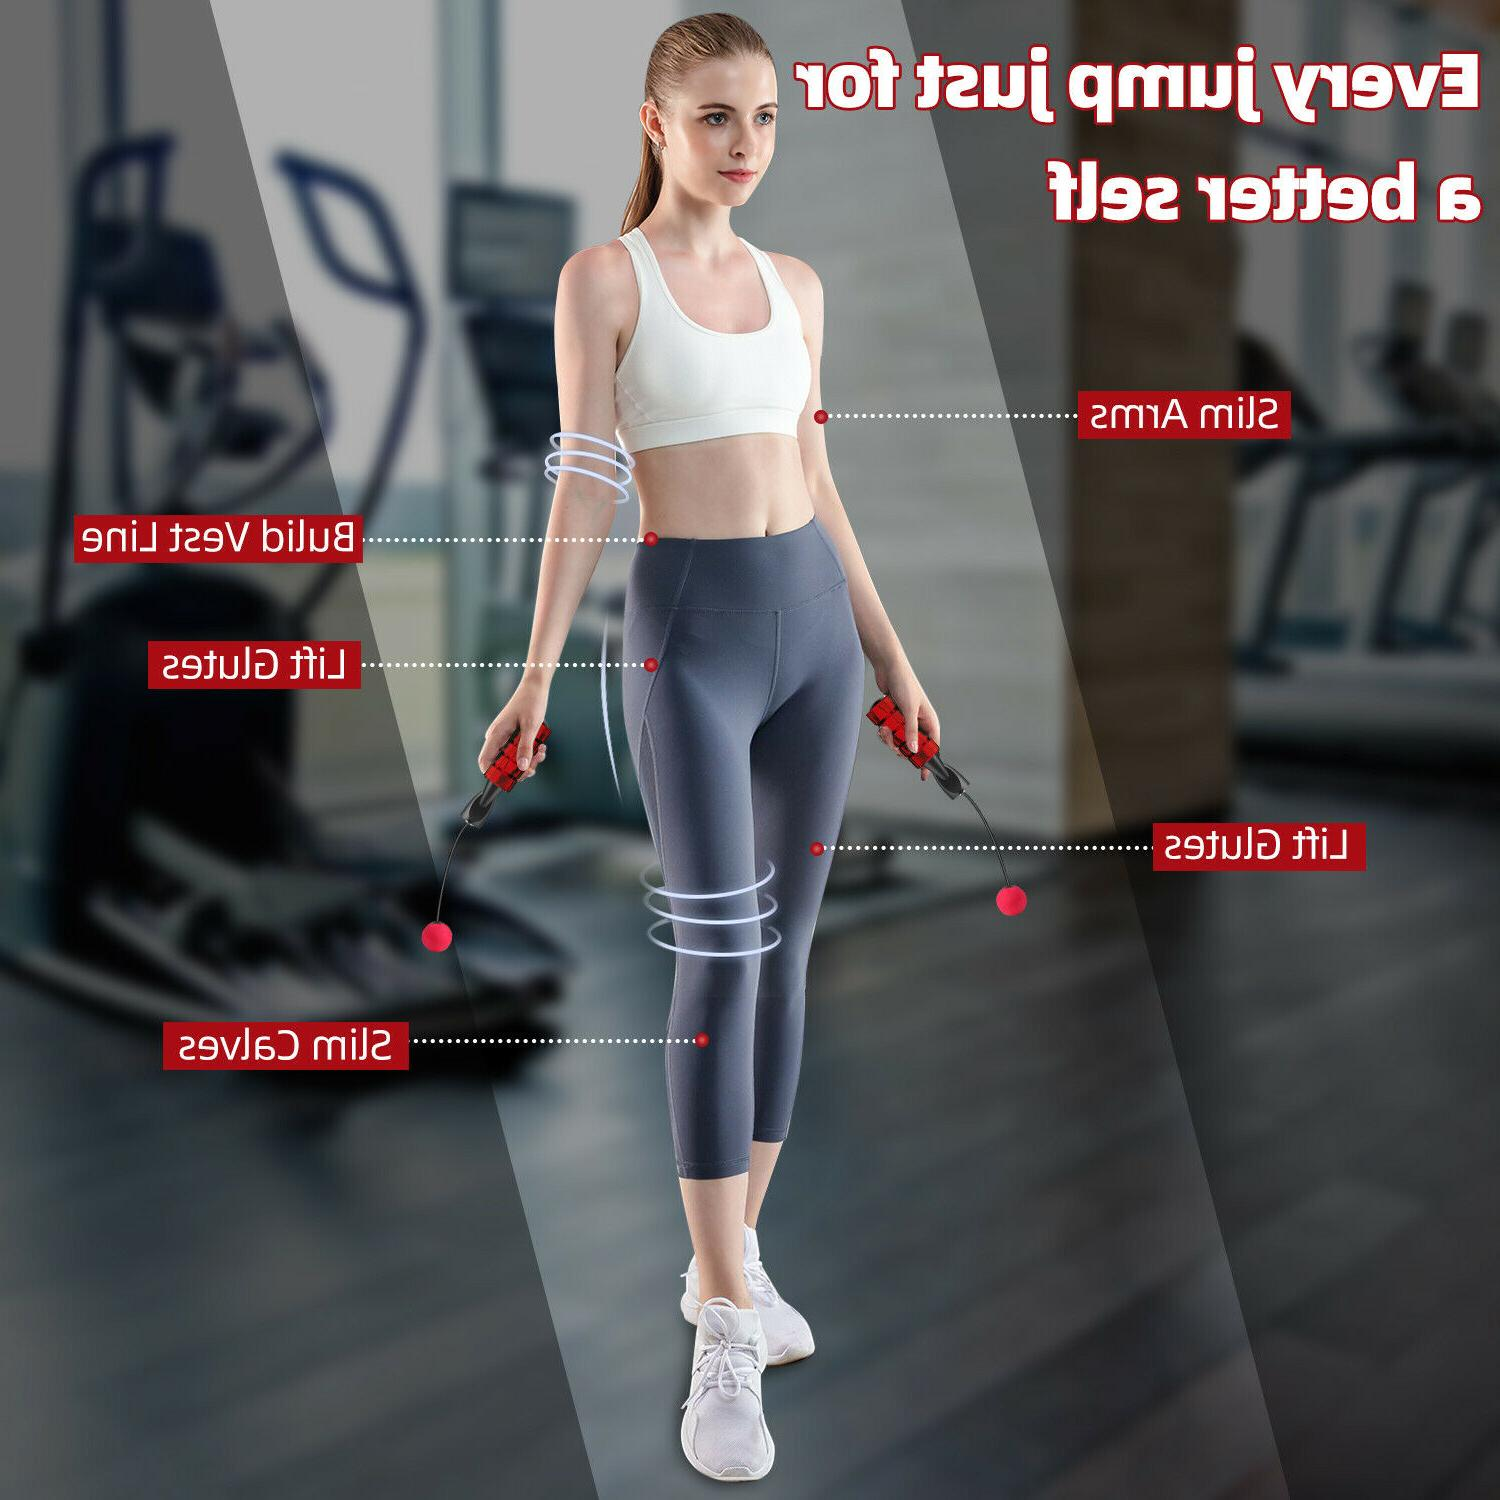 Exercise Rope Ropeless